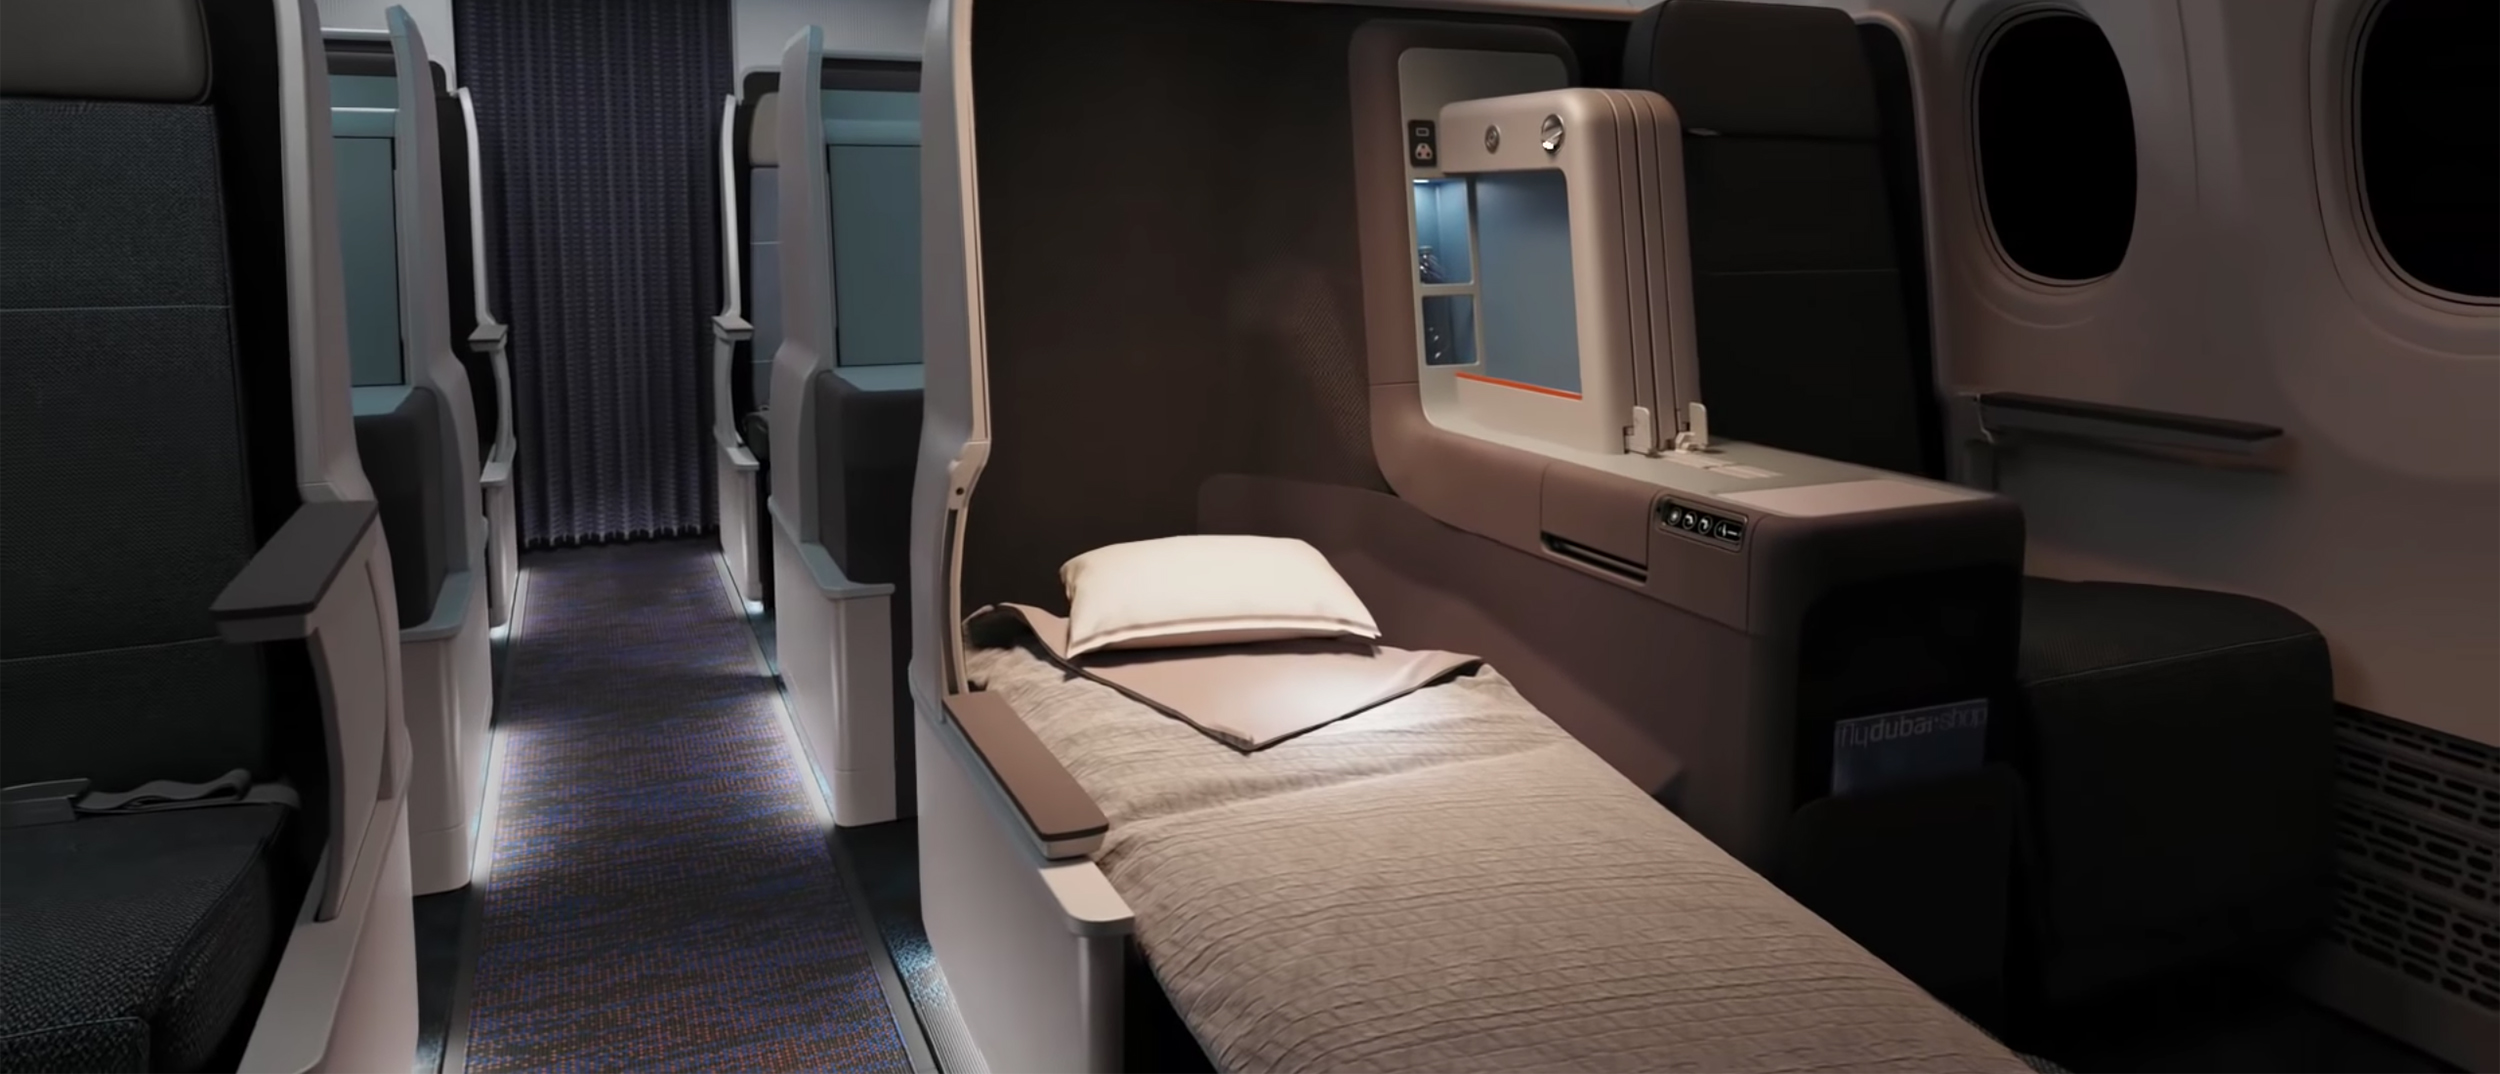 SilkAir's new Boeing 737 flat-bed Business Class seat options